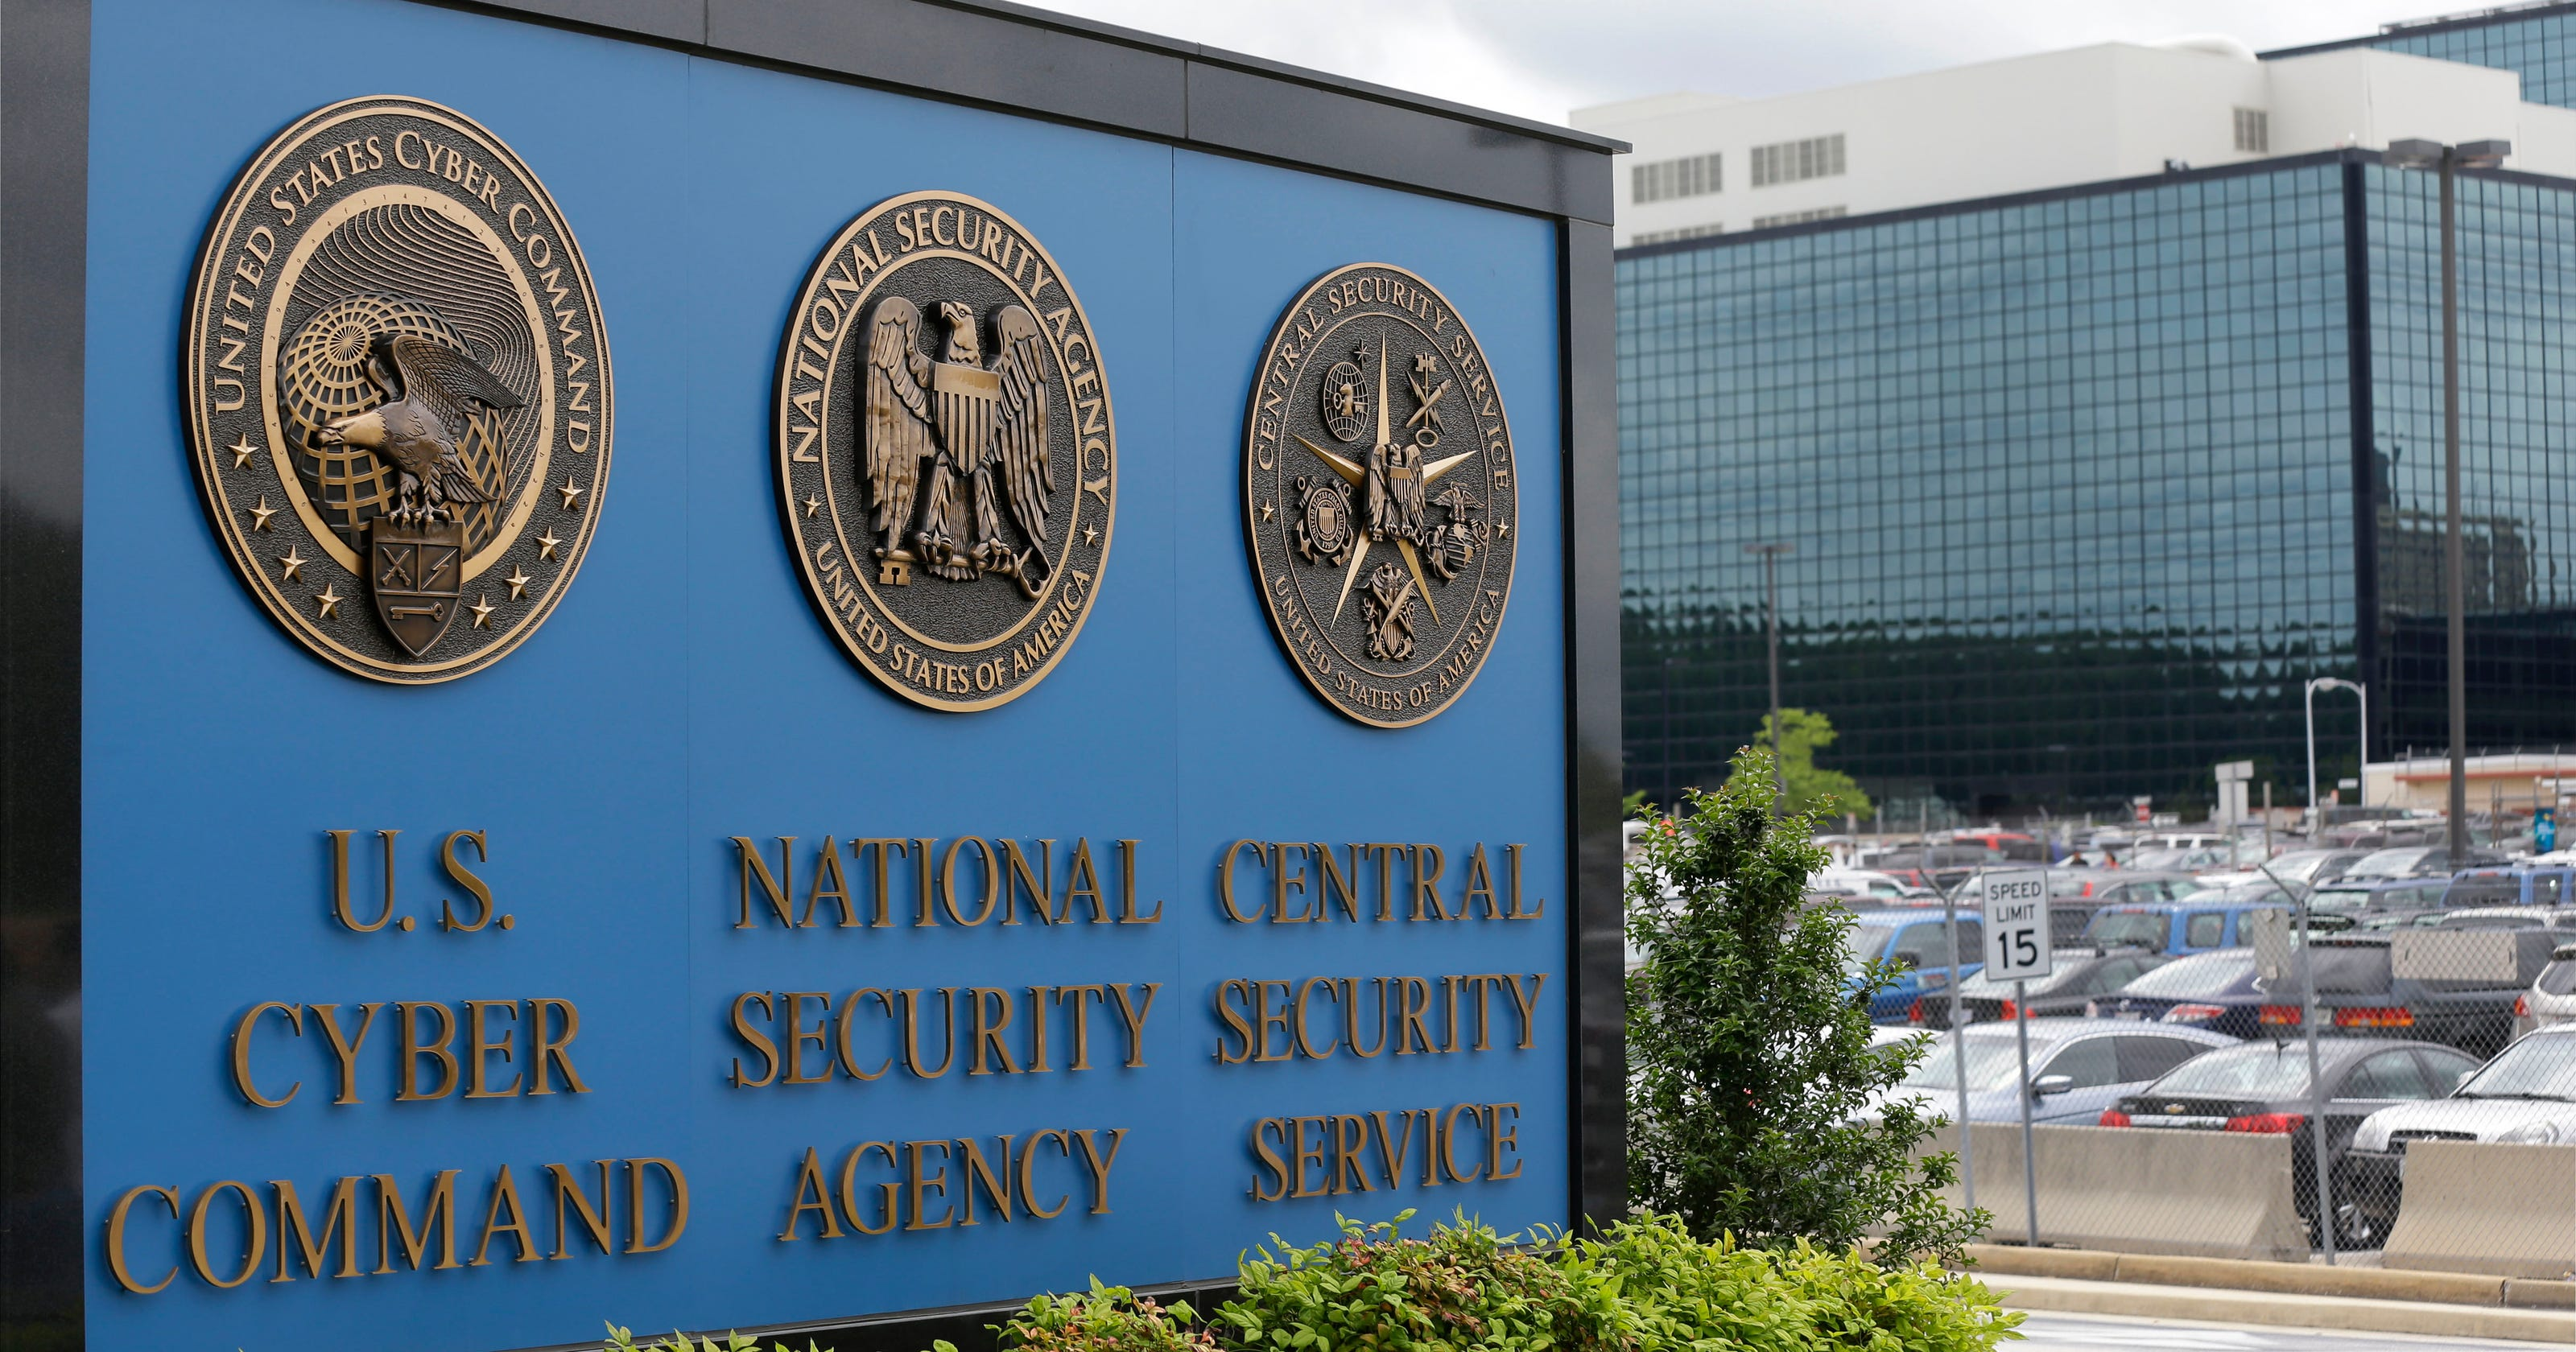 NSA uses supercomputers to crack Web encryption, files show